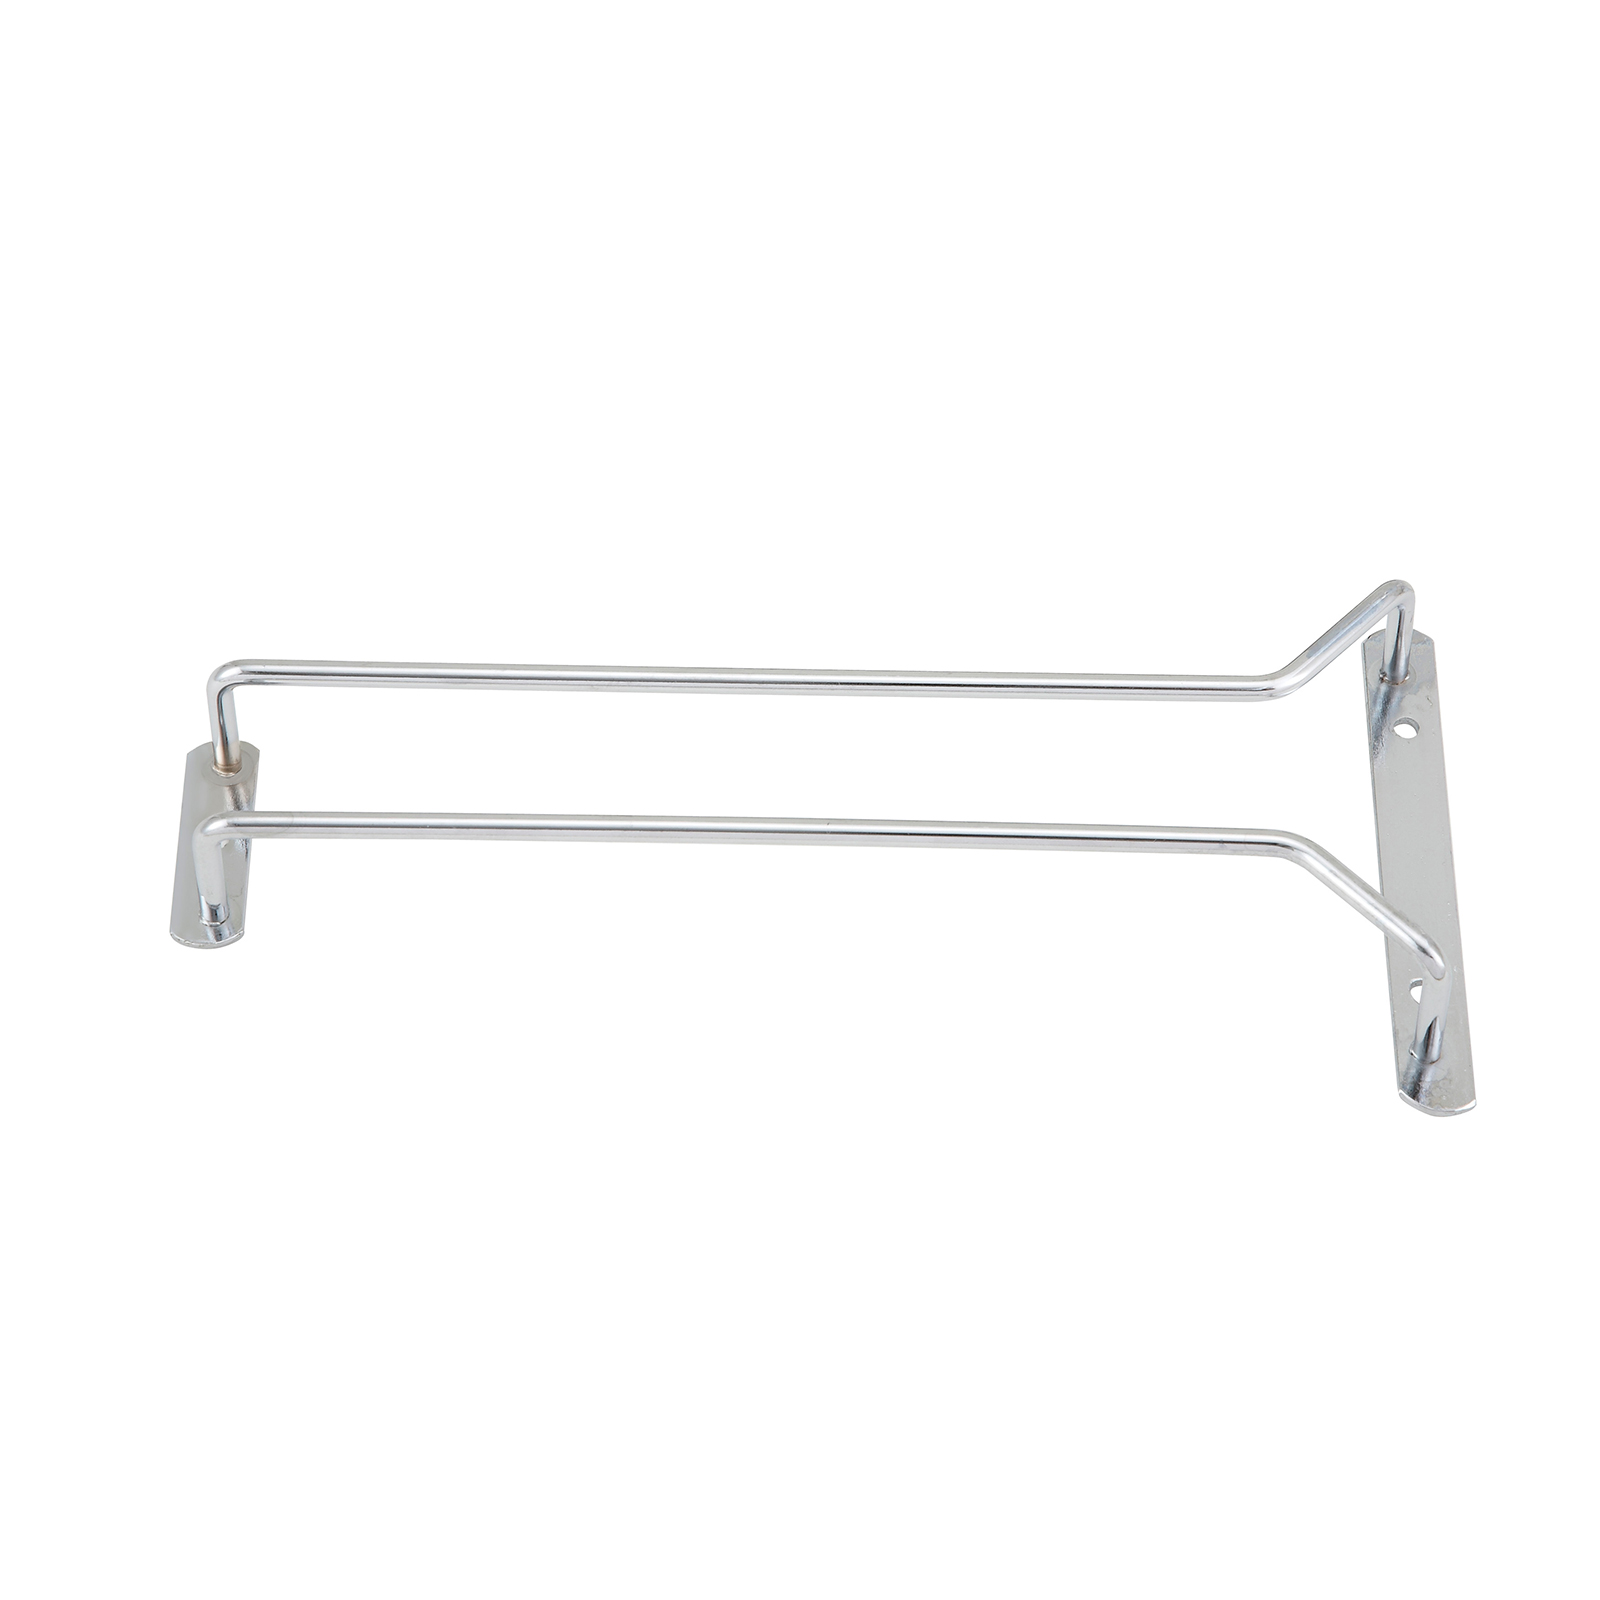 Winco GHC-10 glass rack, hanging